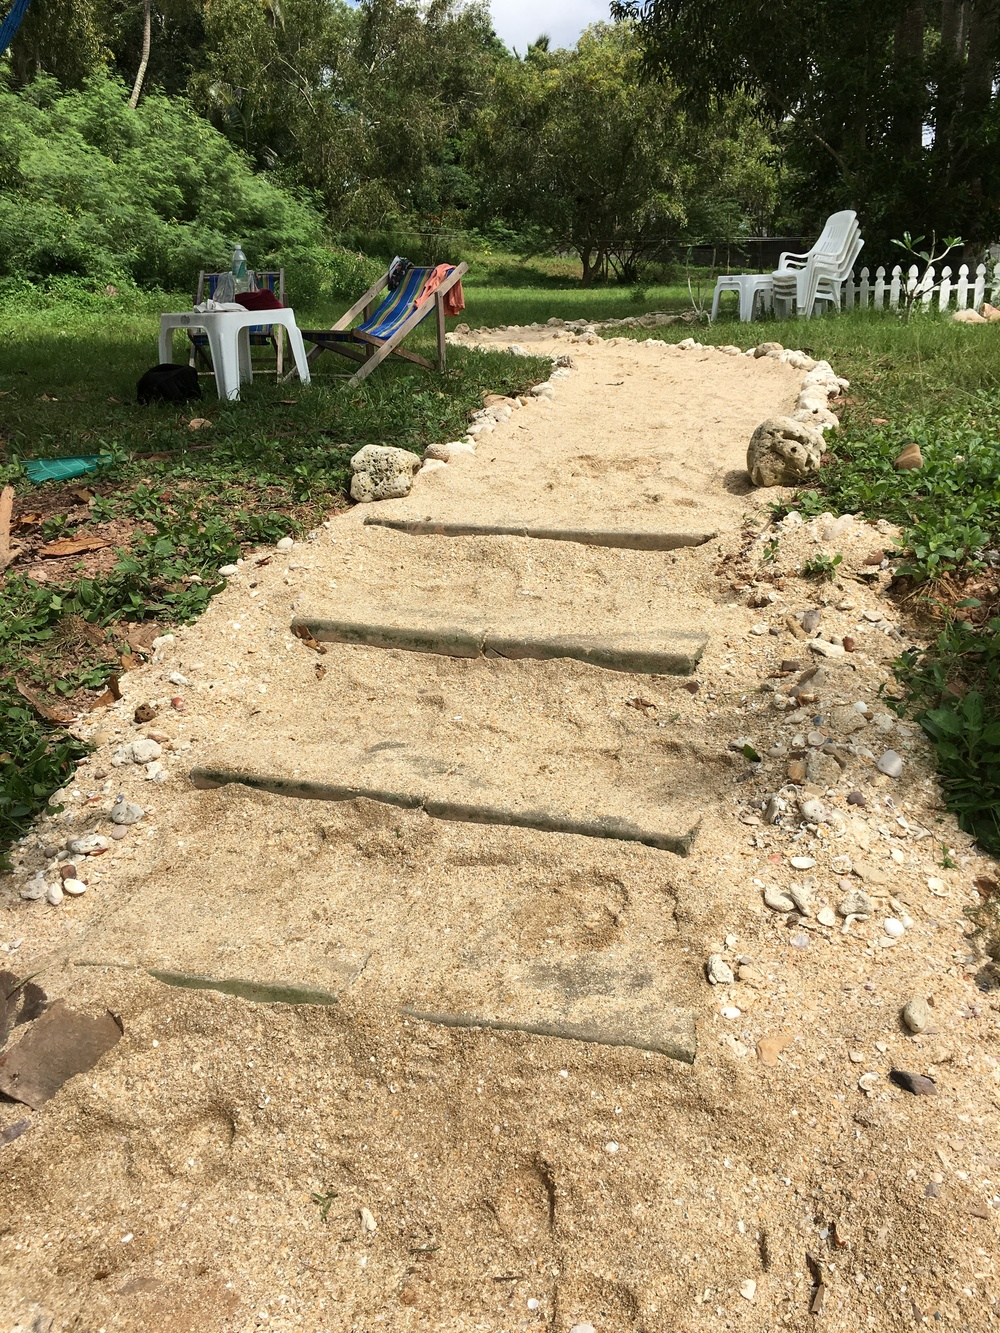 We built new and improved steps down to the beach, too.  (In this picture, we aren't quite done, but close enough to give you the idea.)